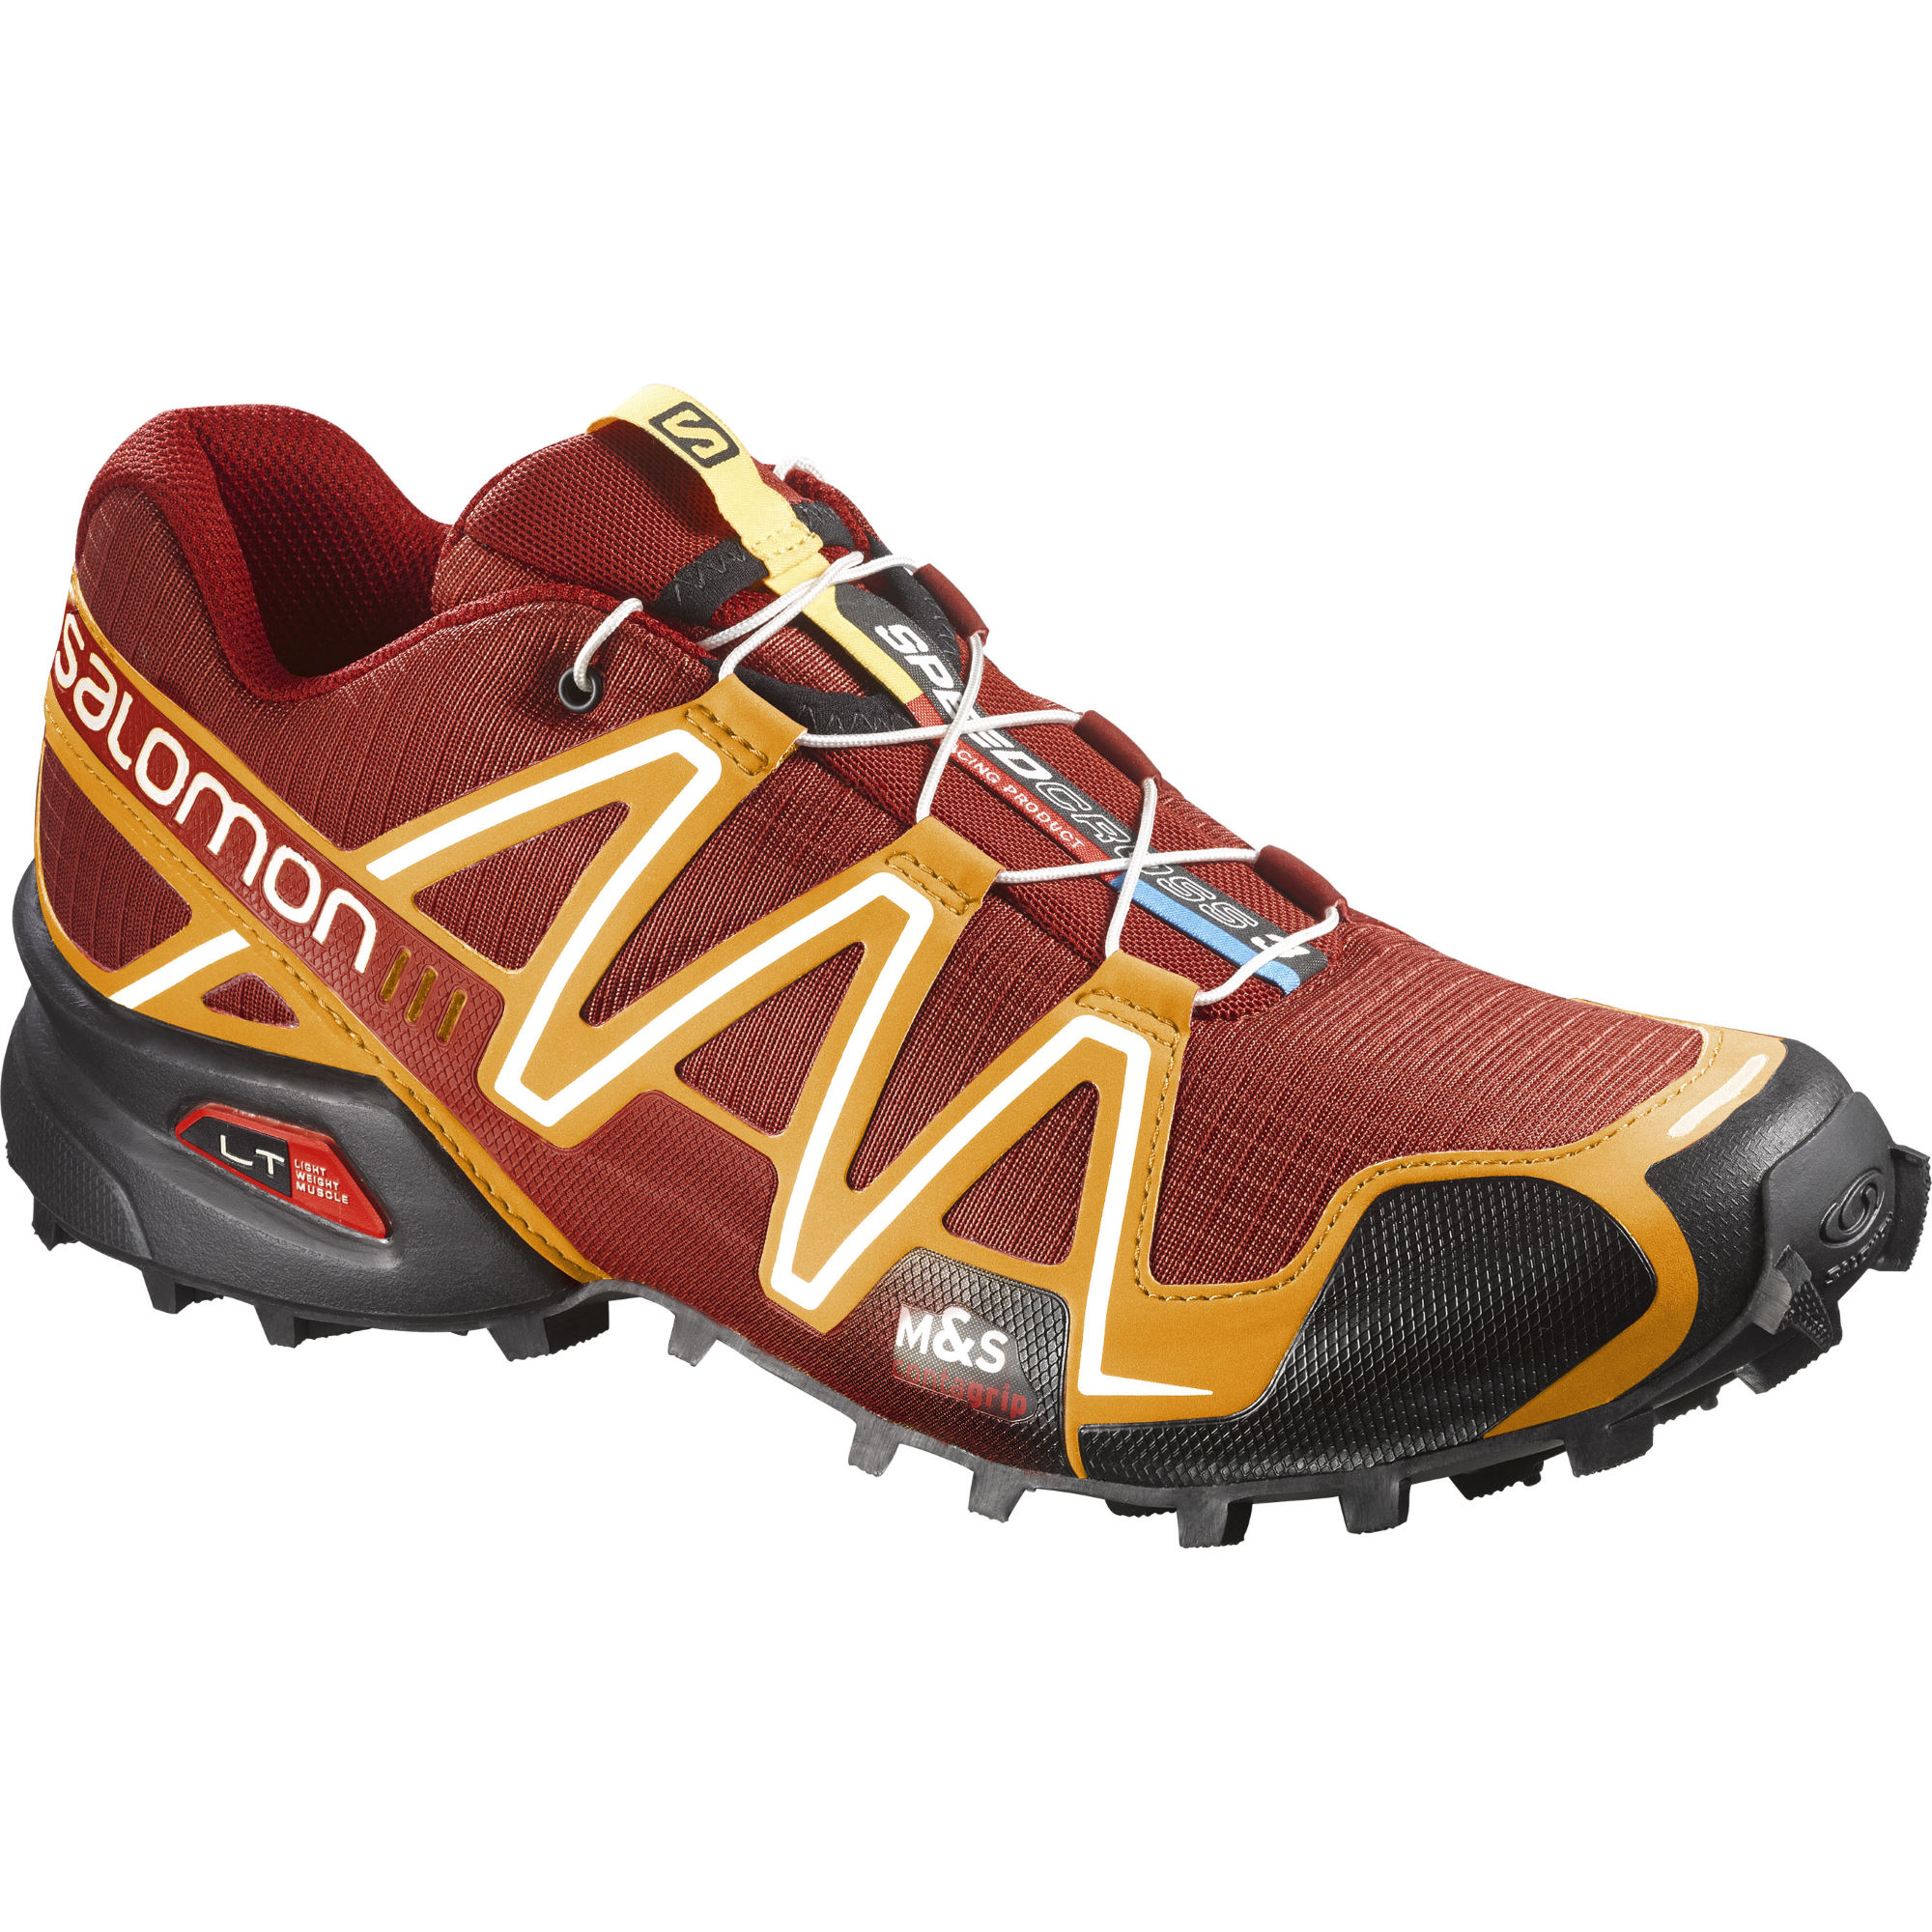 wiggle salomon speedcross 3 yellow shoes aw15 offroad running shoes. Black Bedroom Furniture Sets. Home Design Ideas